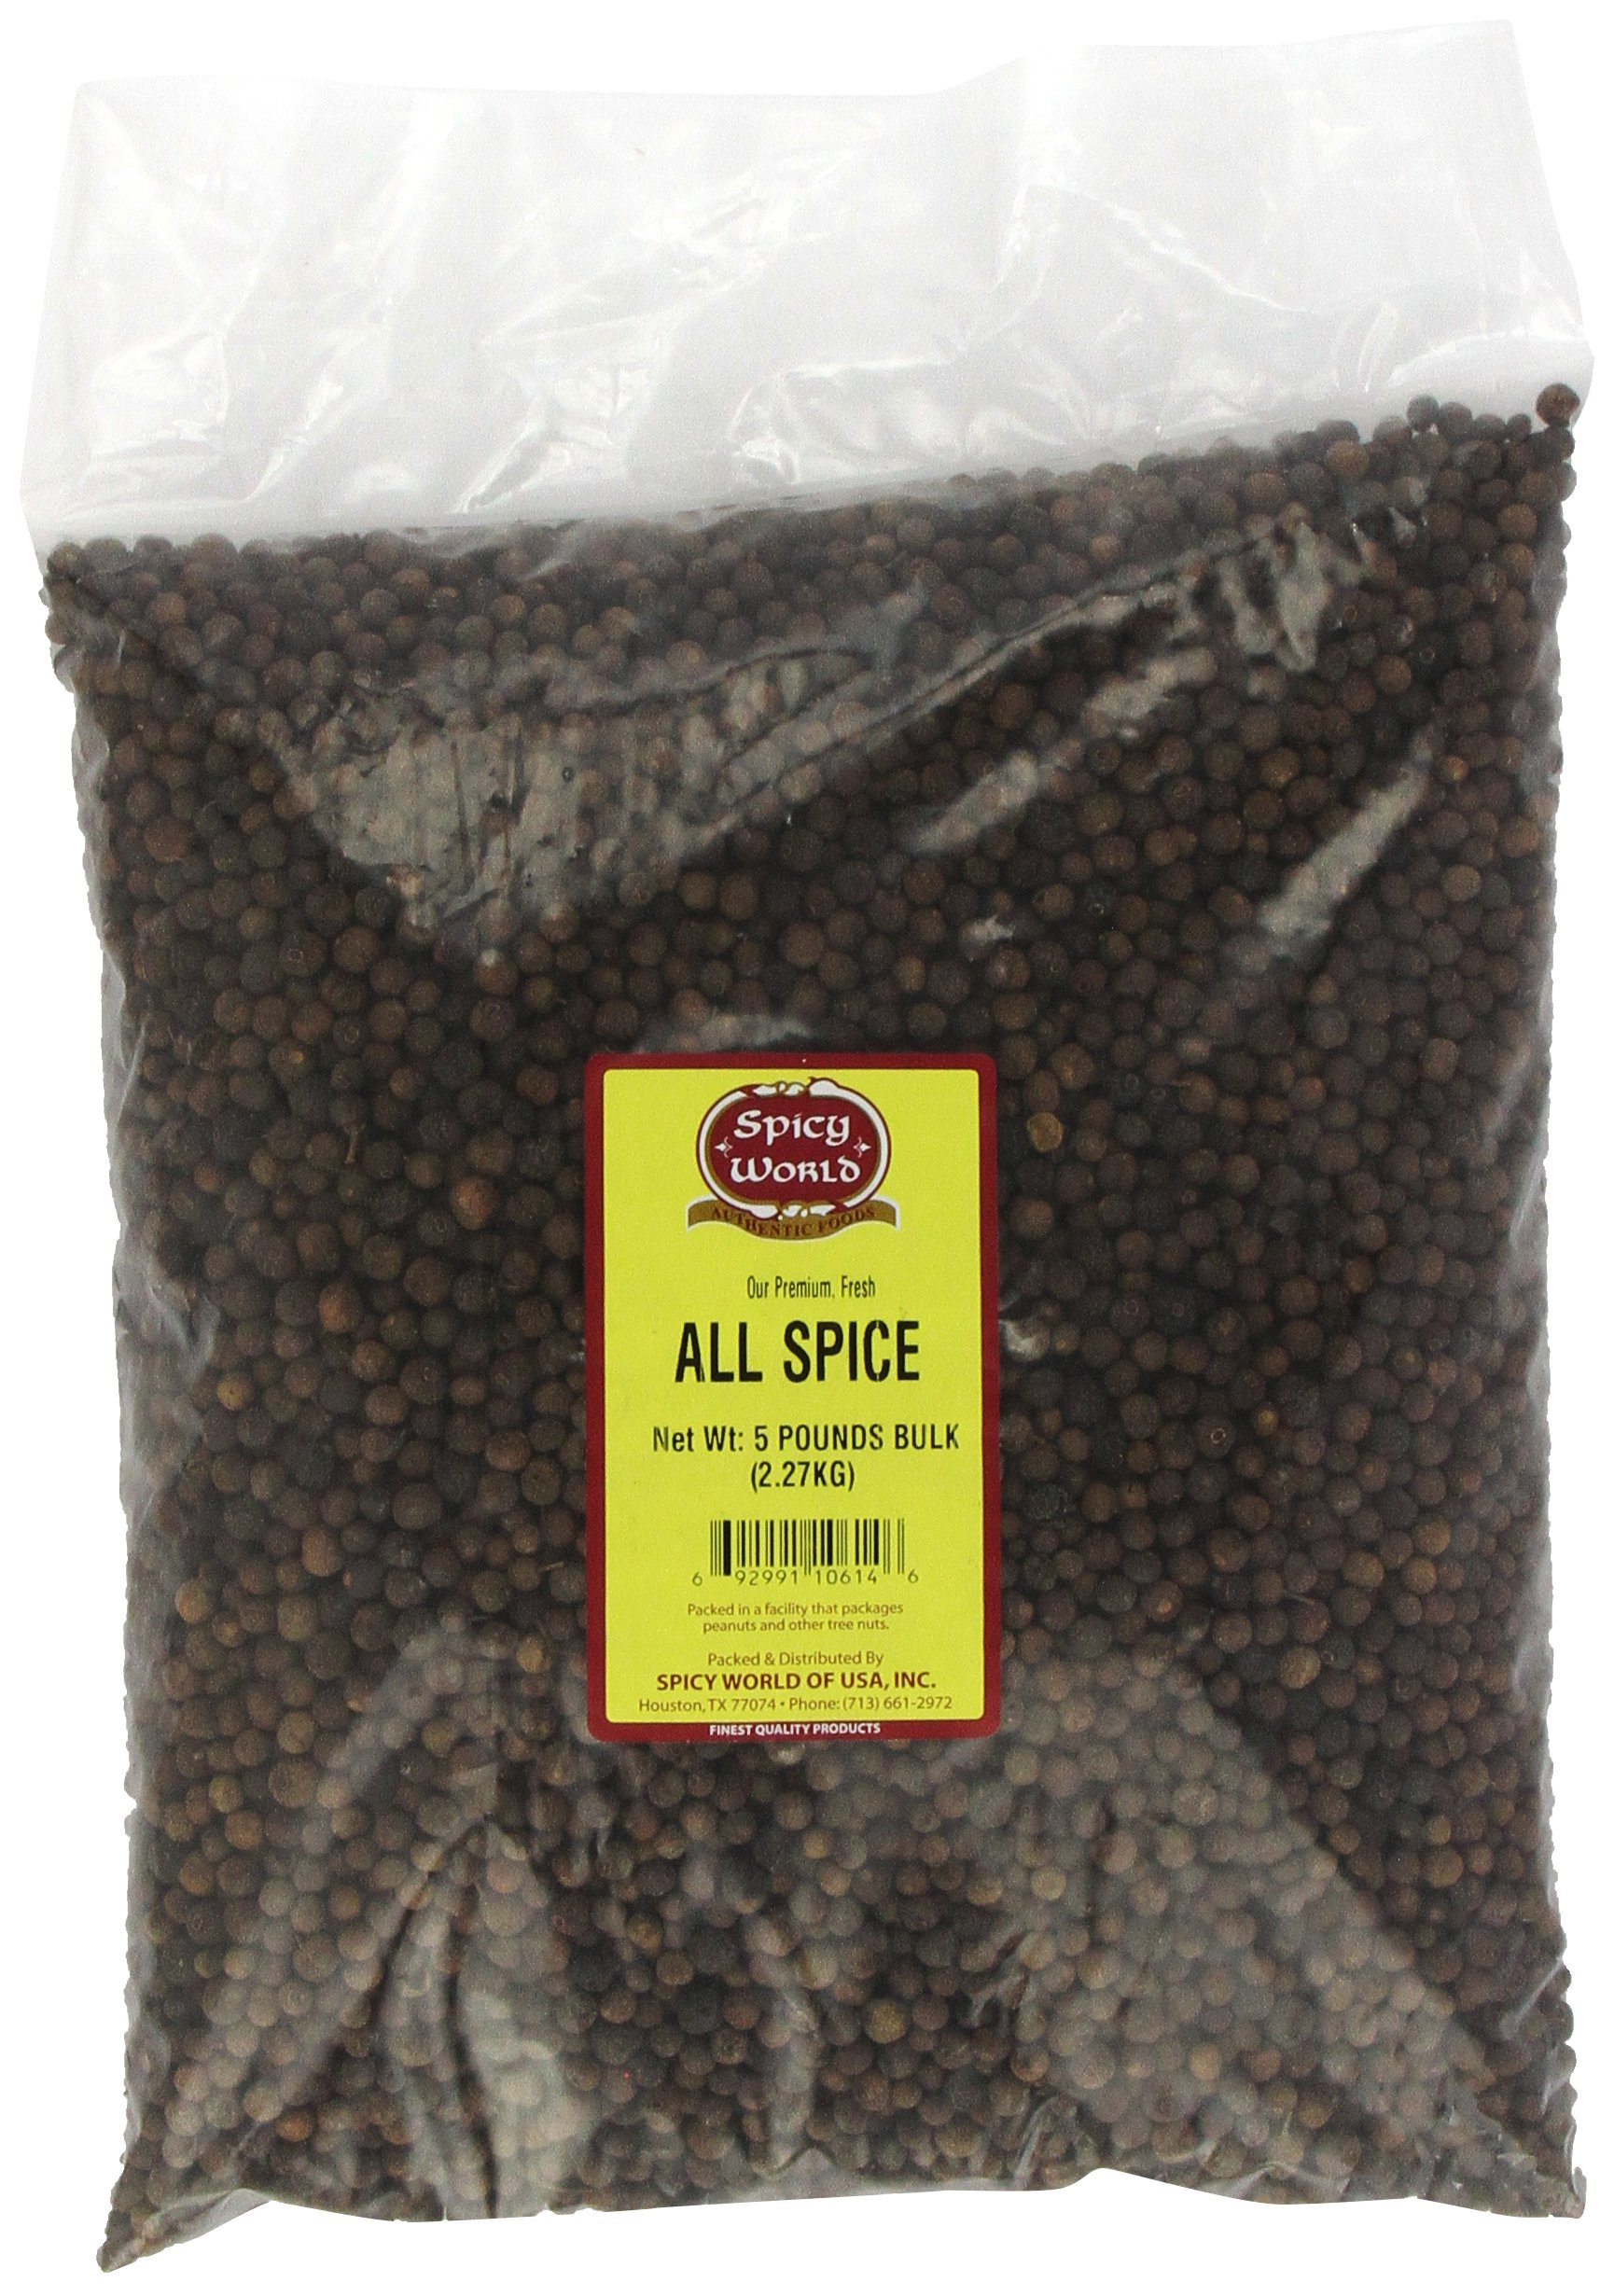 Spicy World All Spice Whole Bulk, 5-Pounds